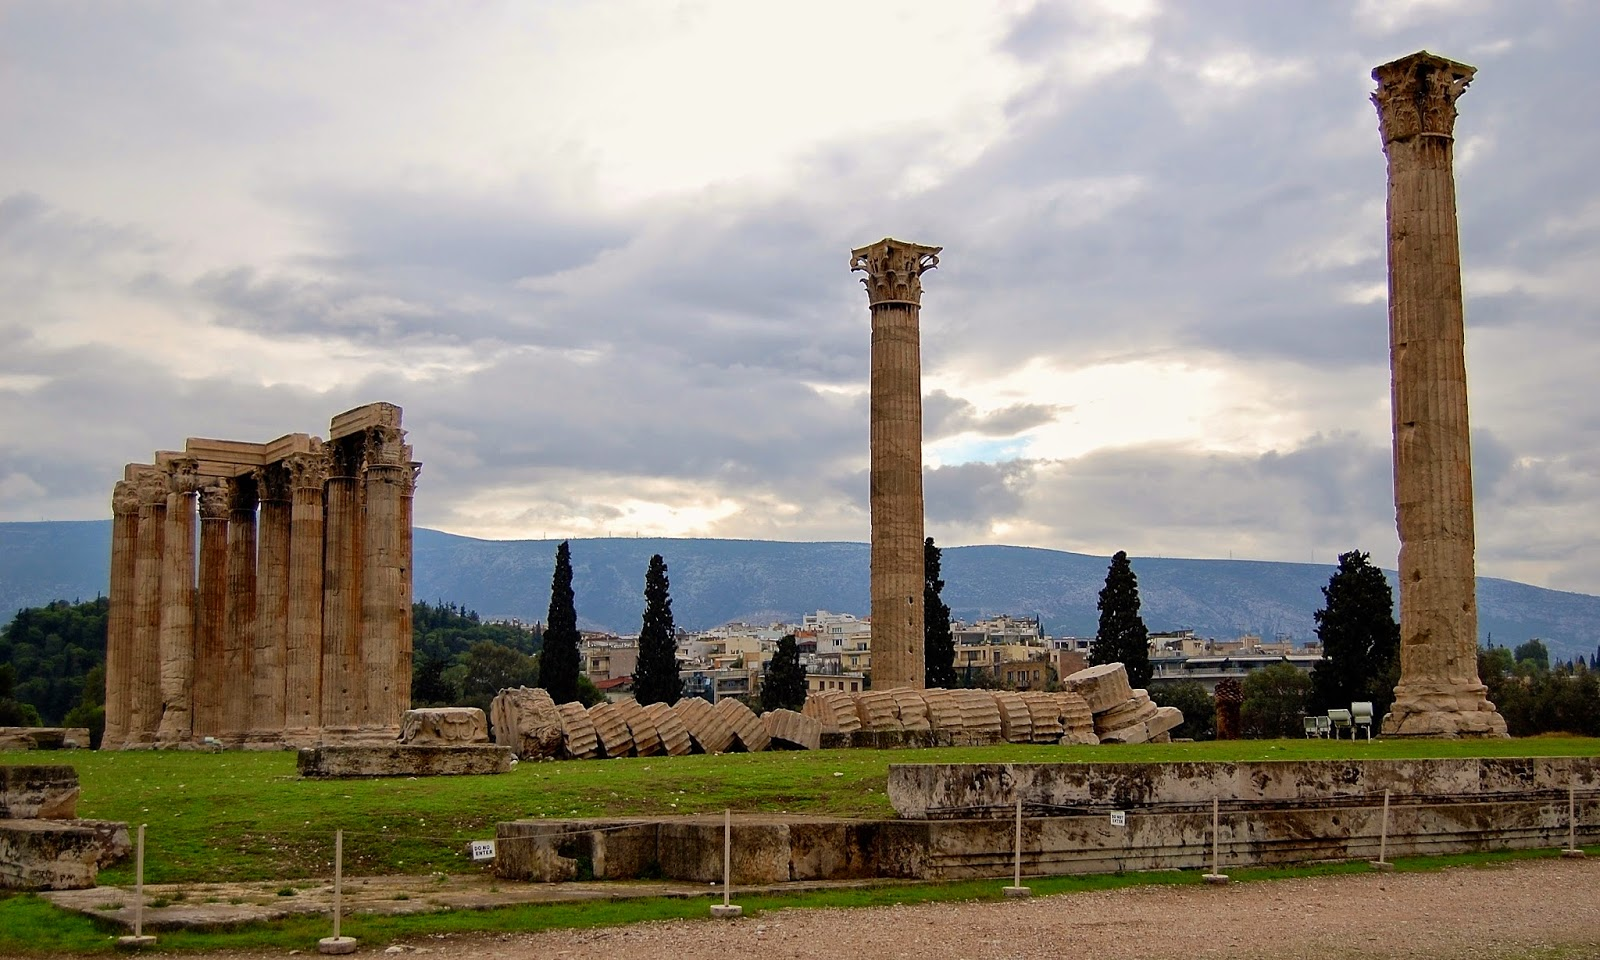 Ruins of the Temple of Olympian Zeus